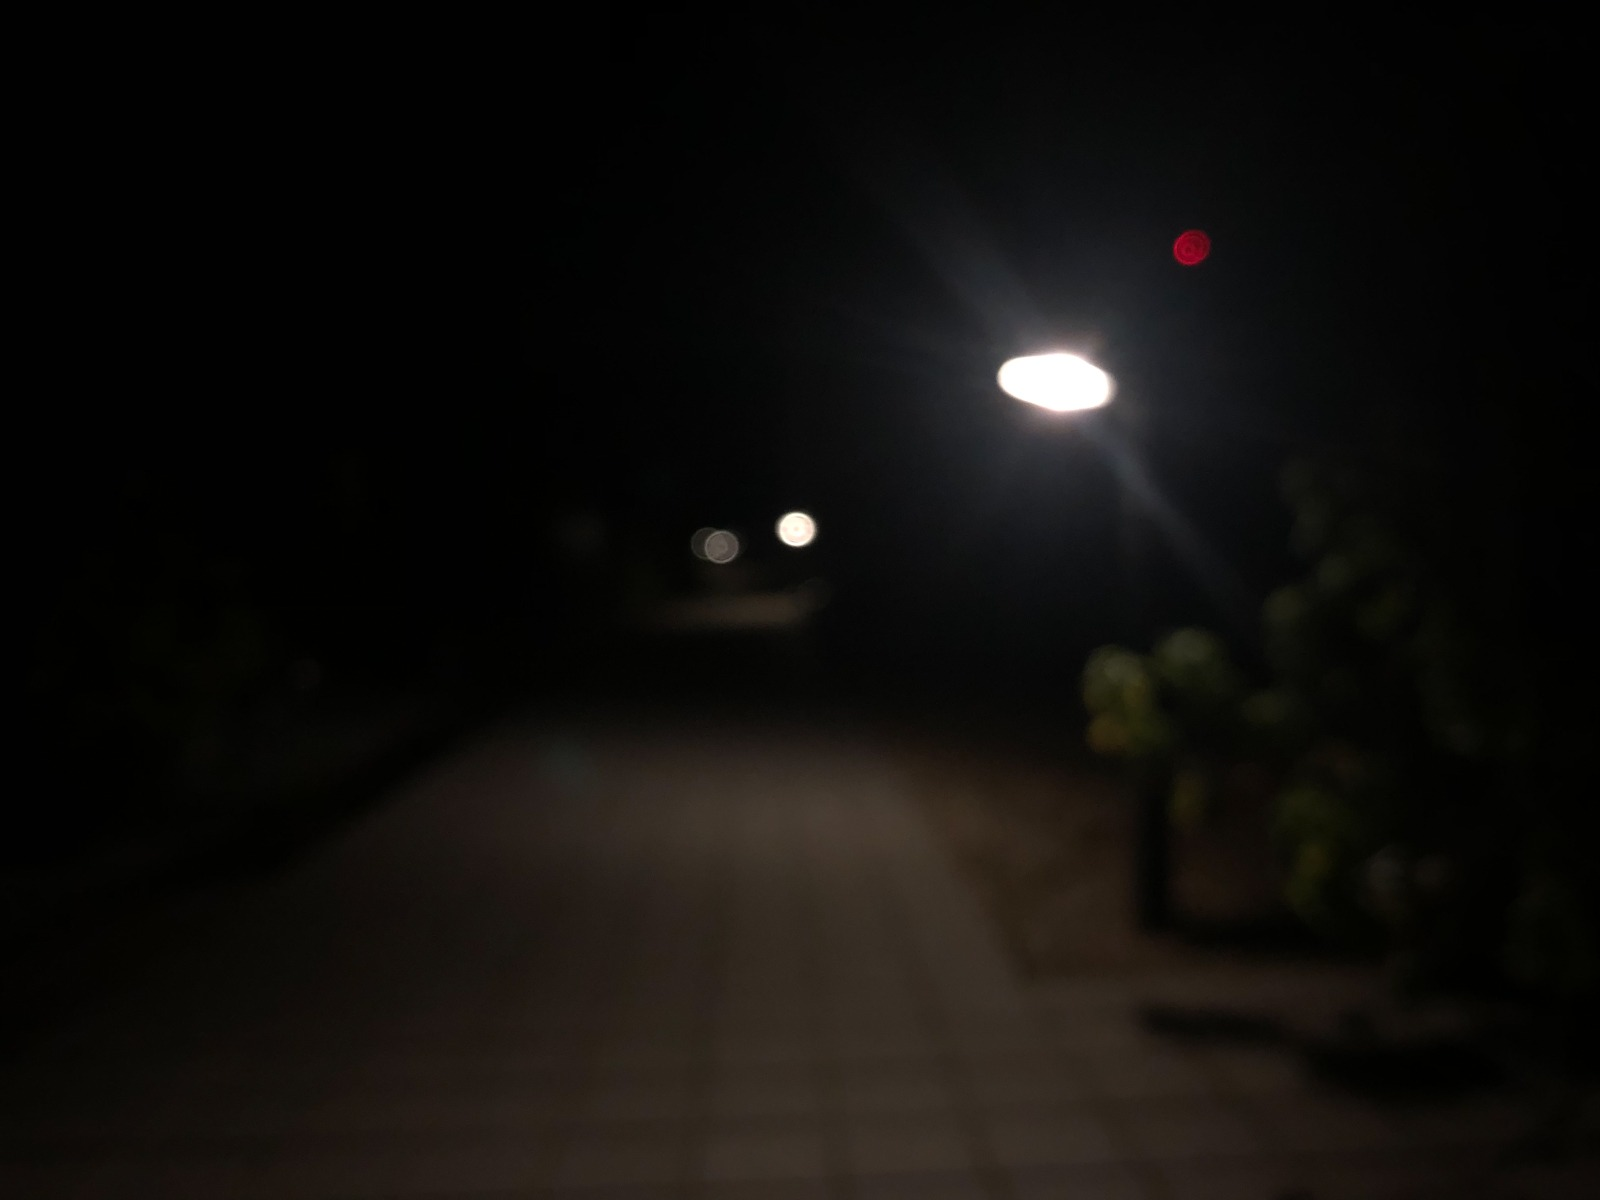 Normal, round bokeh from standard lens